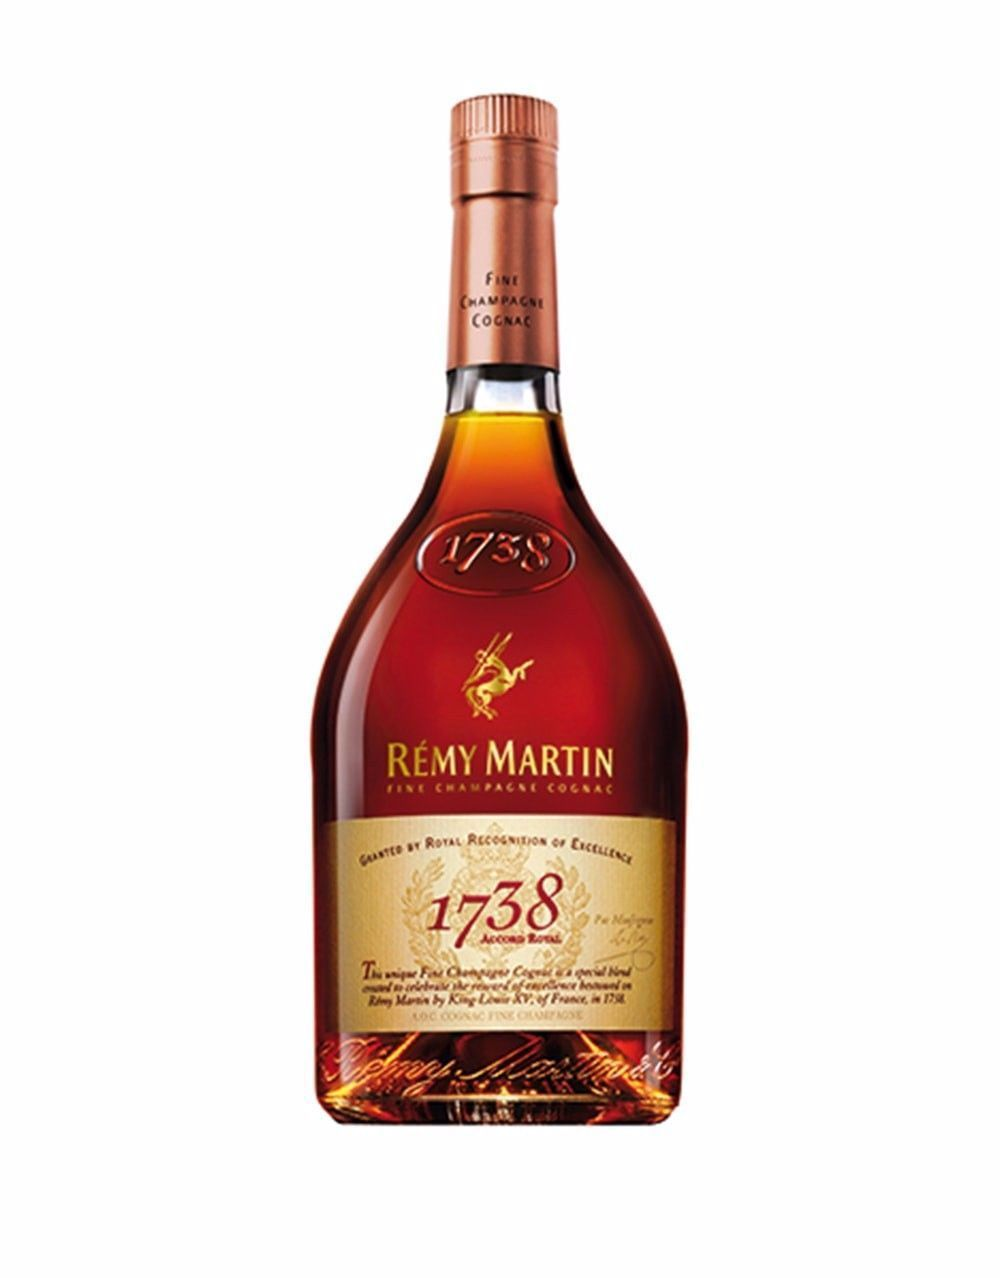 Send Remy Martin 1738 Accord Royal Cognac As The Perfect Gift For Father S Day Christmas Or Birthday Or As A Congratul In 2020 Remy Martin Bottle Champagne Gift Set